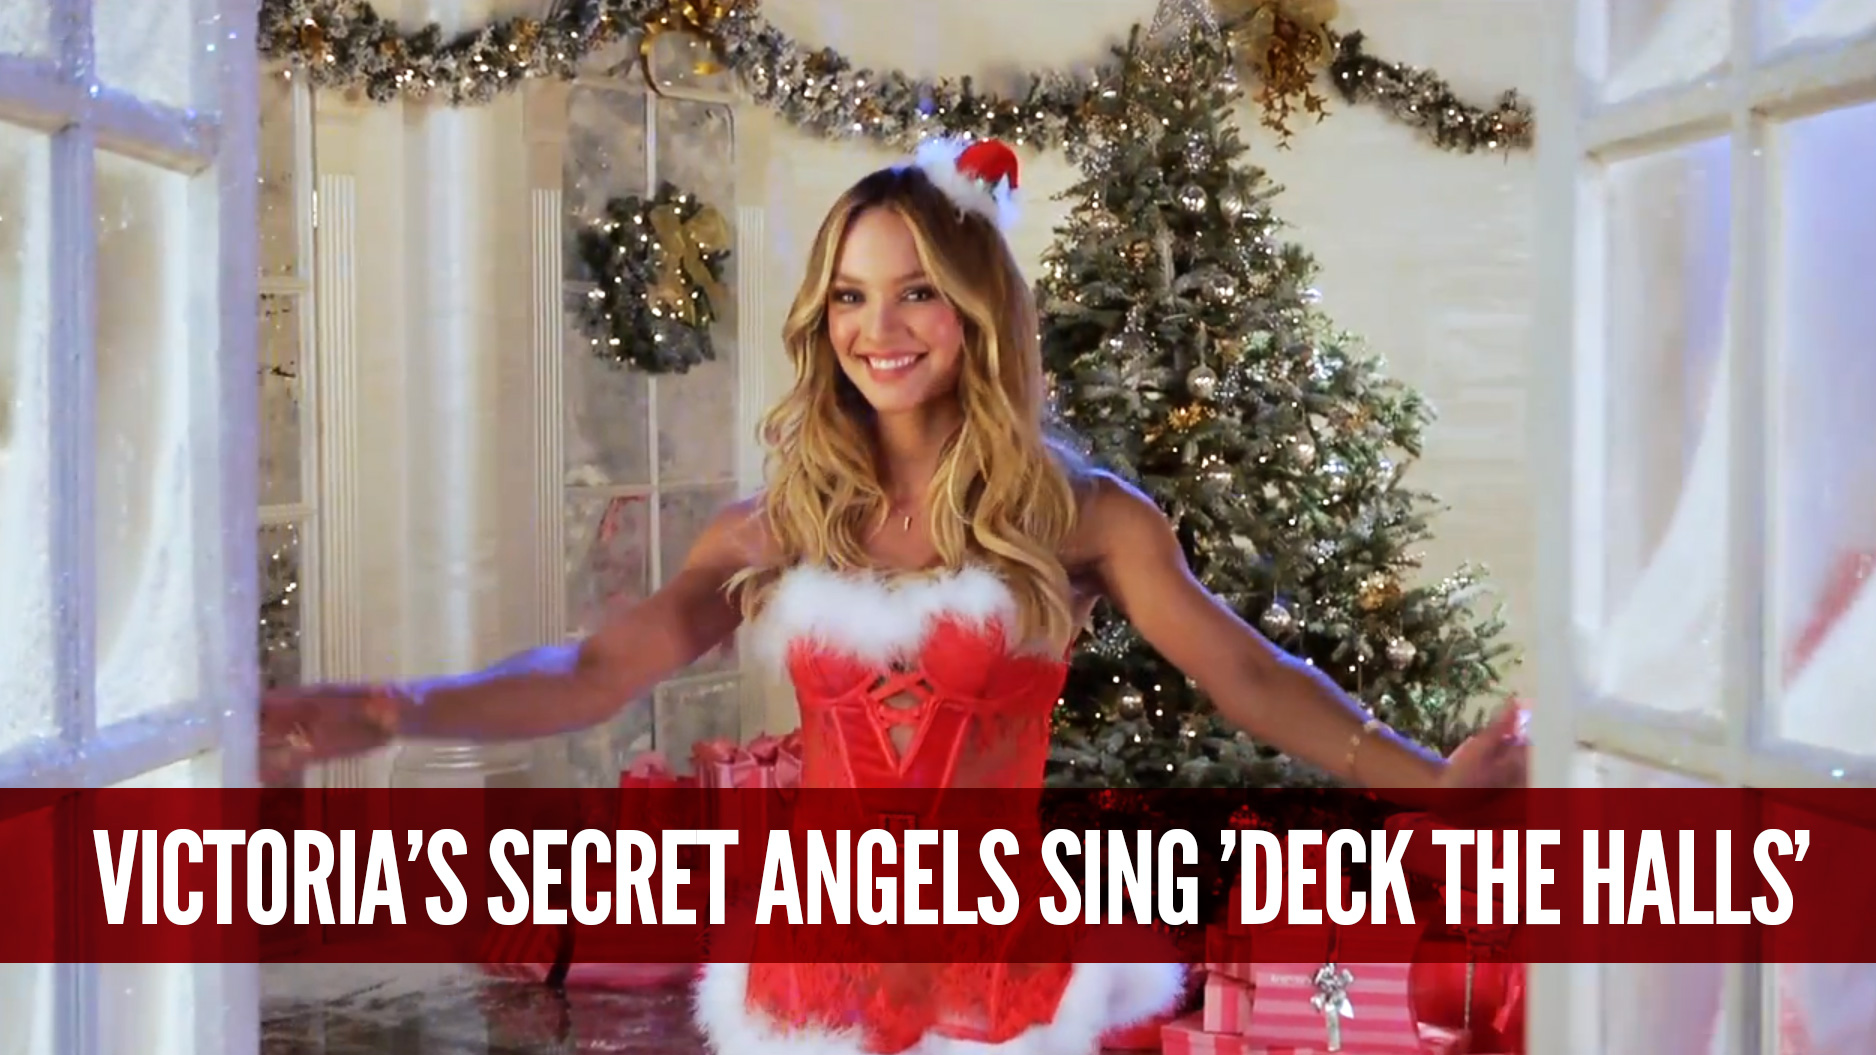 Merry Christmas  The Victoria   s Secret Angels Sing    Deck the Halls    Victorias Secret Christmas Wallpaper